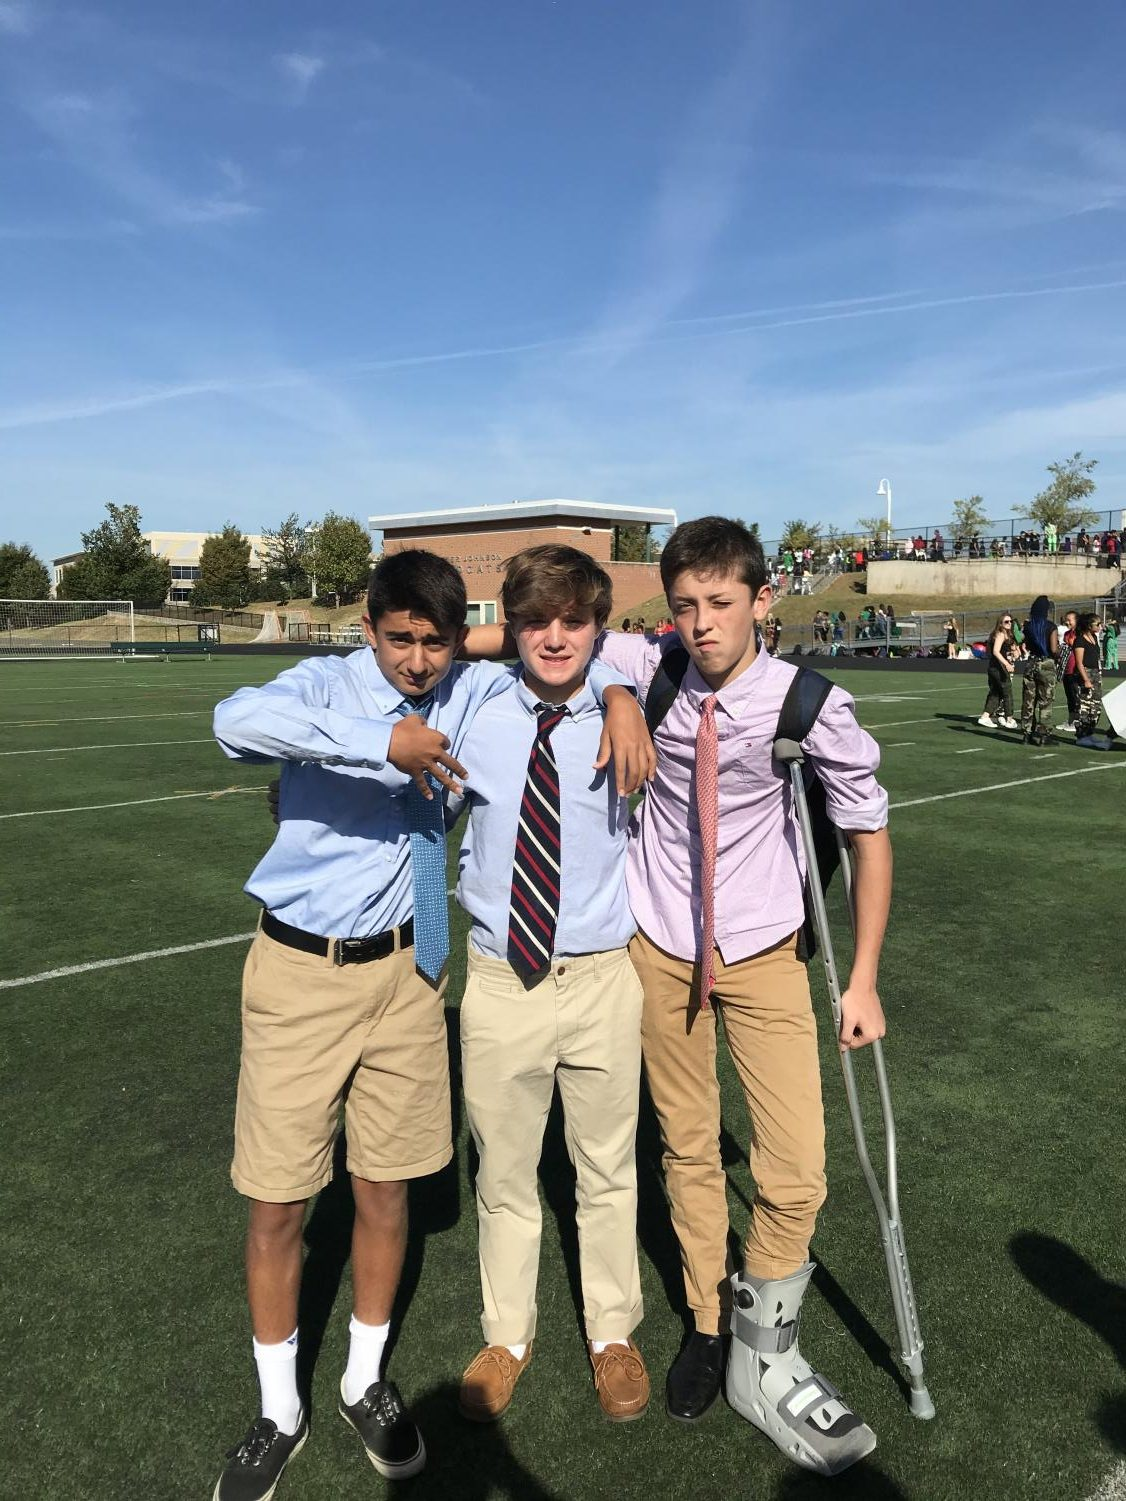 Freshmen Bardia Hormozi (left), Sean Blakeslee (middle), and Sammy Gramlich (right), complete their very first high school pep rally.